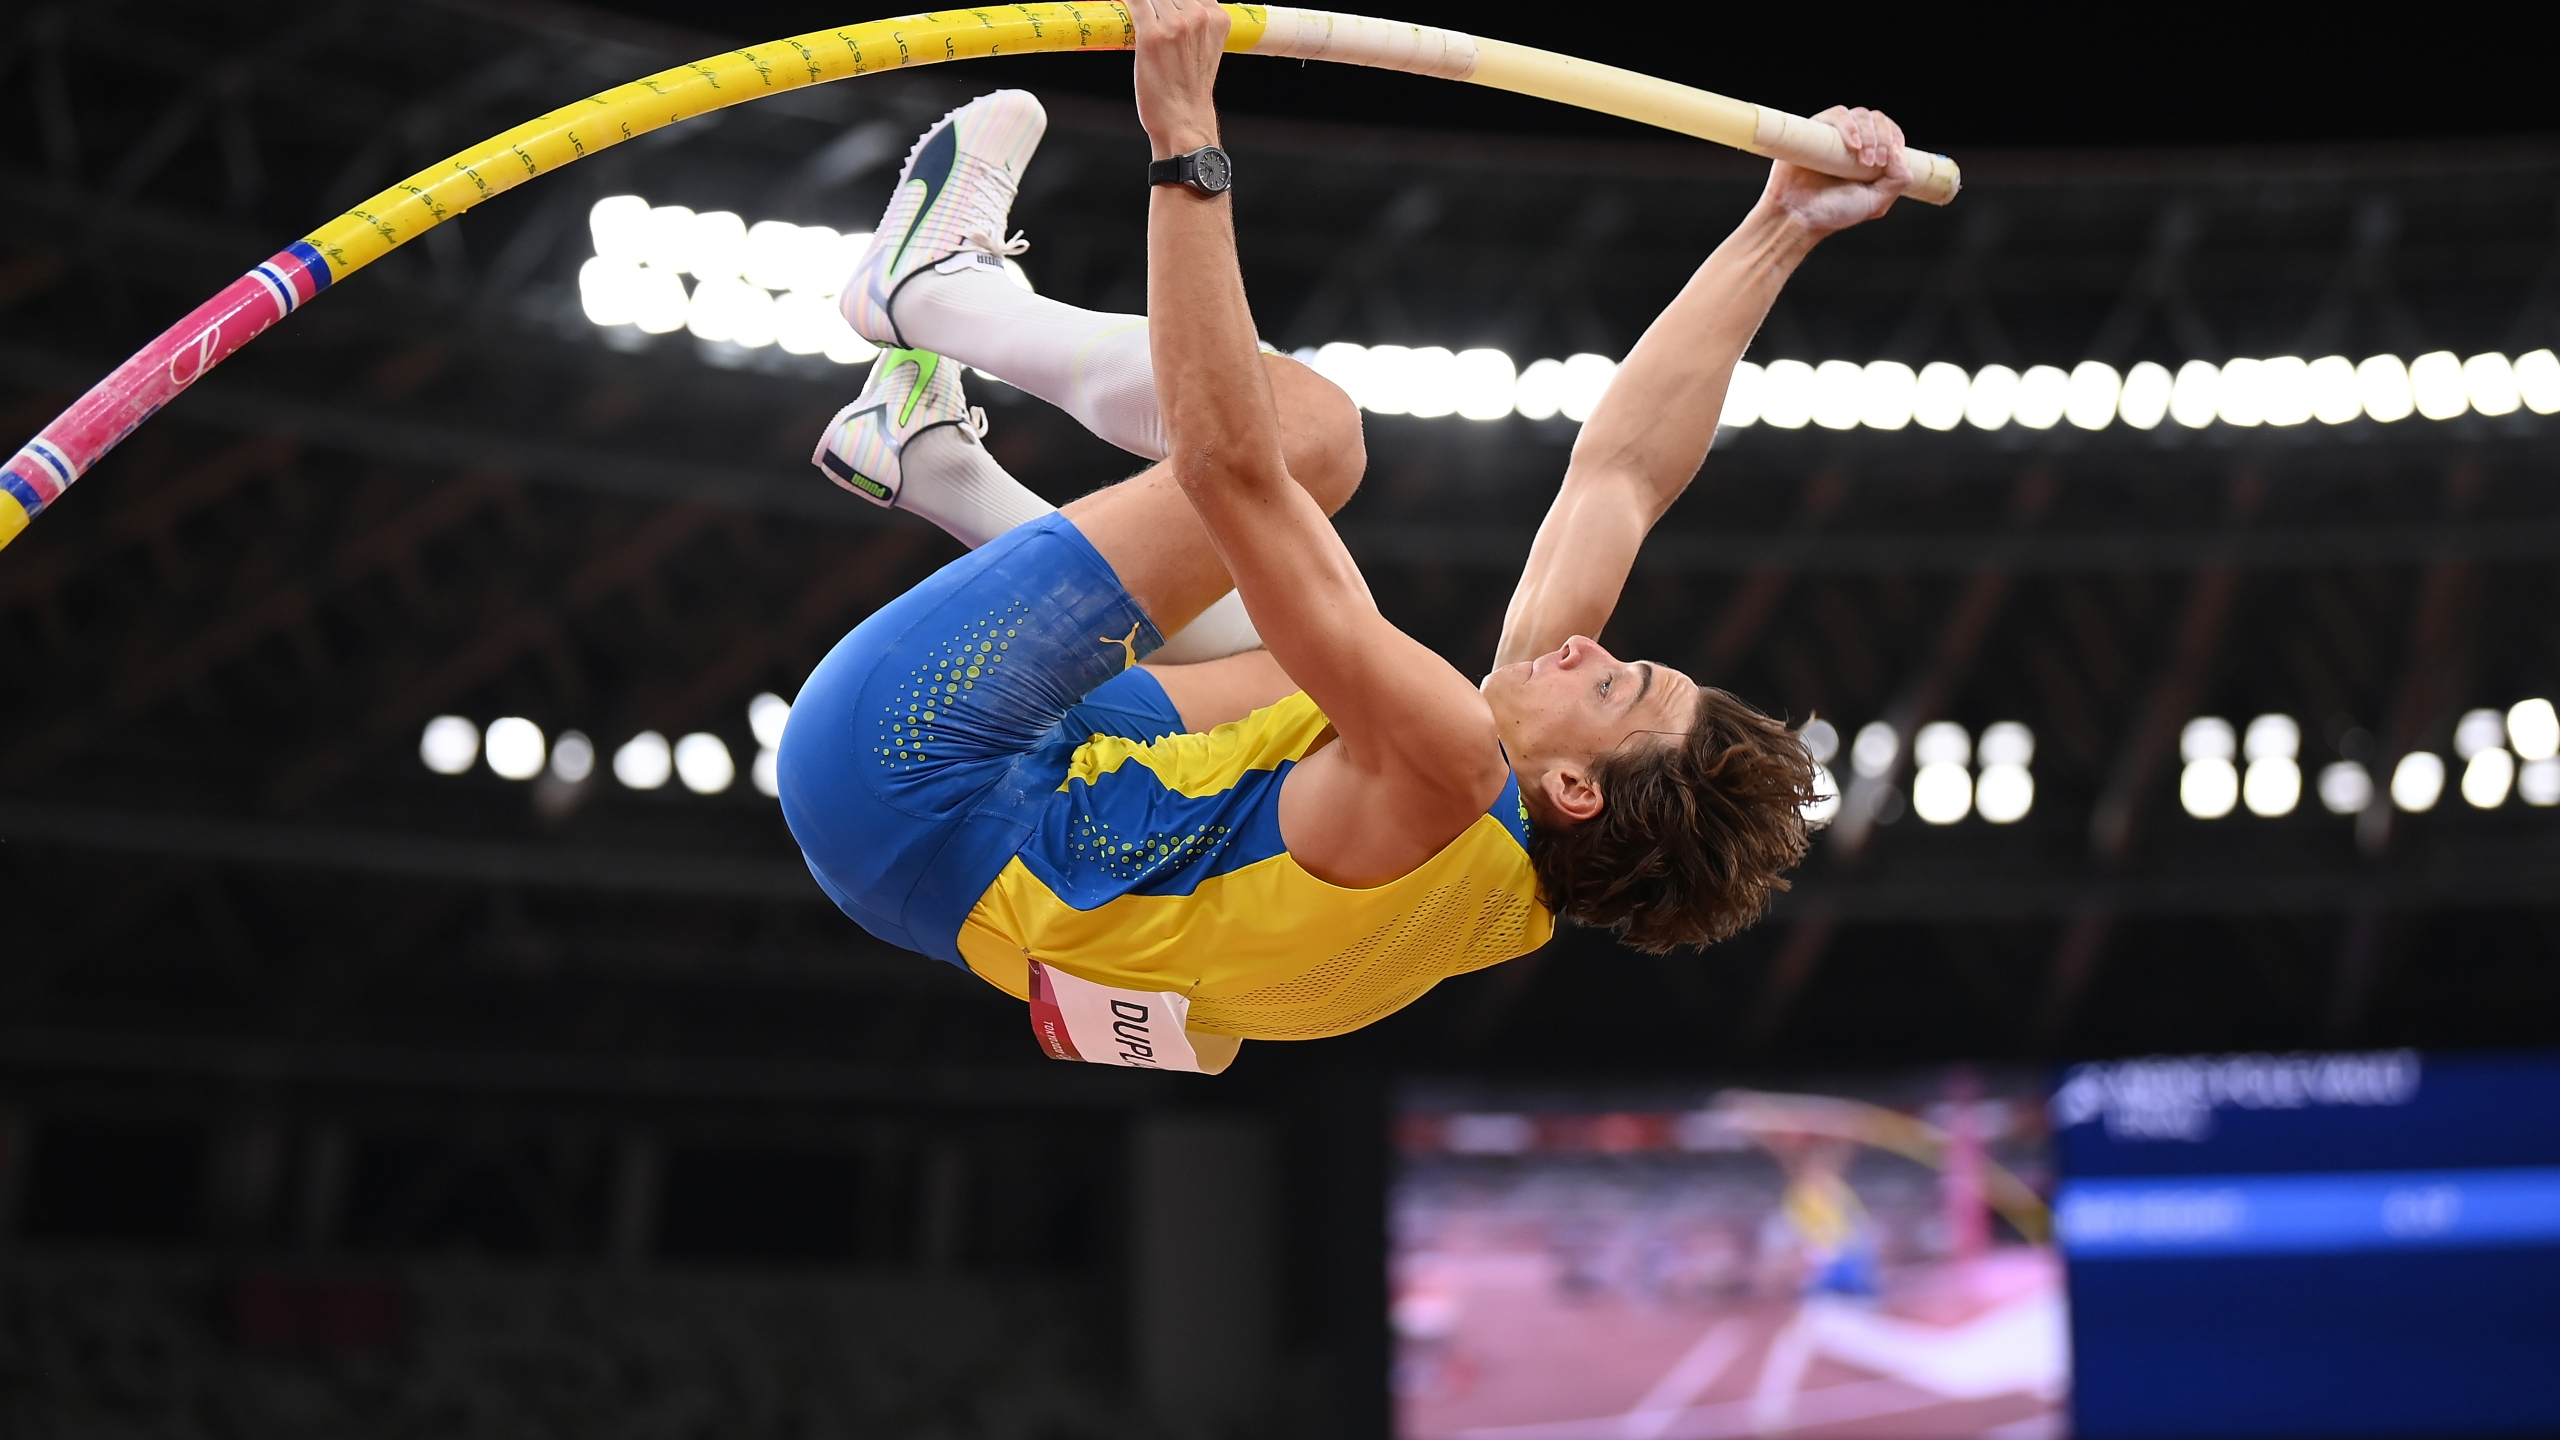 TOKYO, JAPAN - AUGUST 03: Armand Duplantis of Team Sweden competes in the Men's Pole Vault Final on day eleven of the Tokyo 2020 Olympic Games at Olympic Stadium on August 03, 2021 in Tokyo, Japan. (Photo by Matthias Hangst/Getty Images)